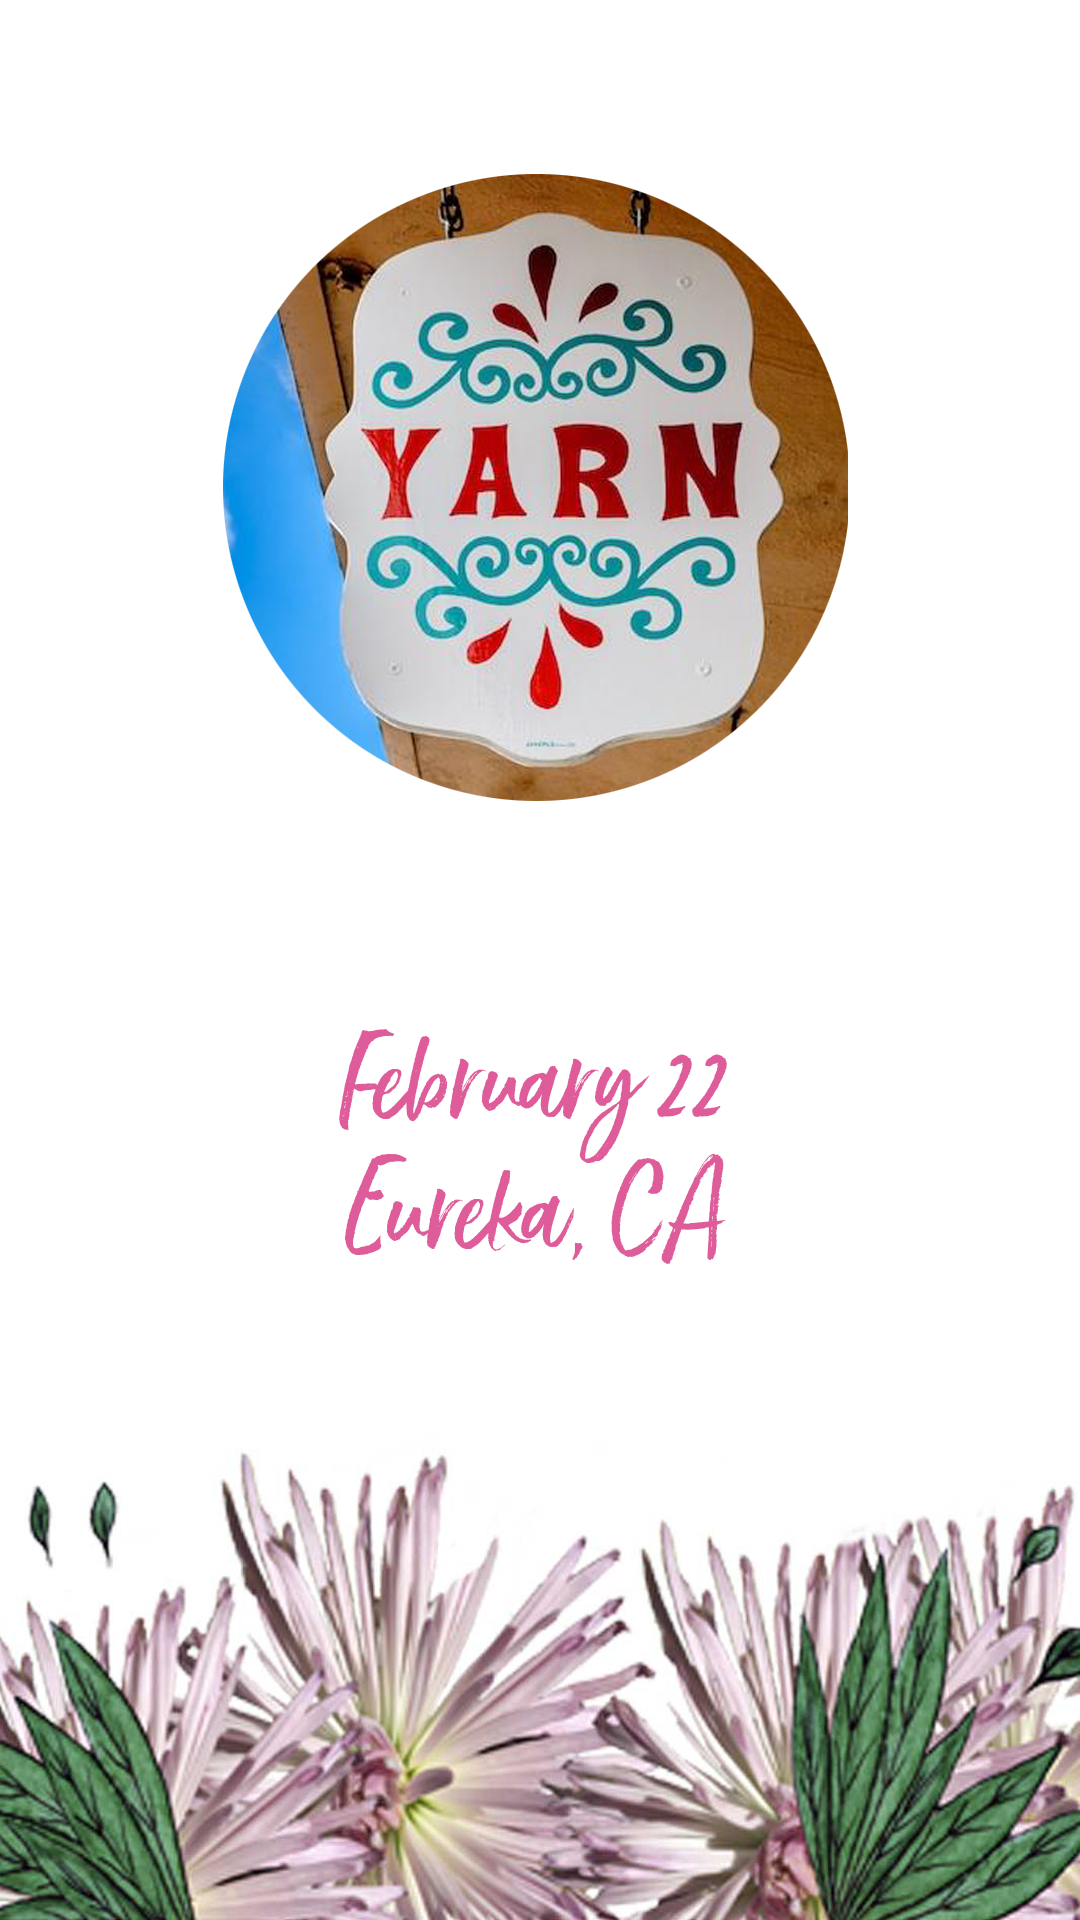 Book Signing at Yarn Eureka, CA